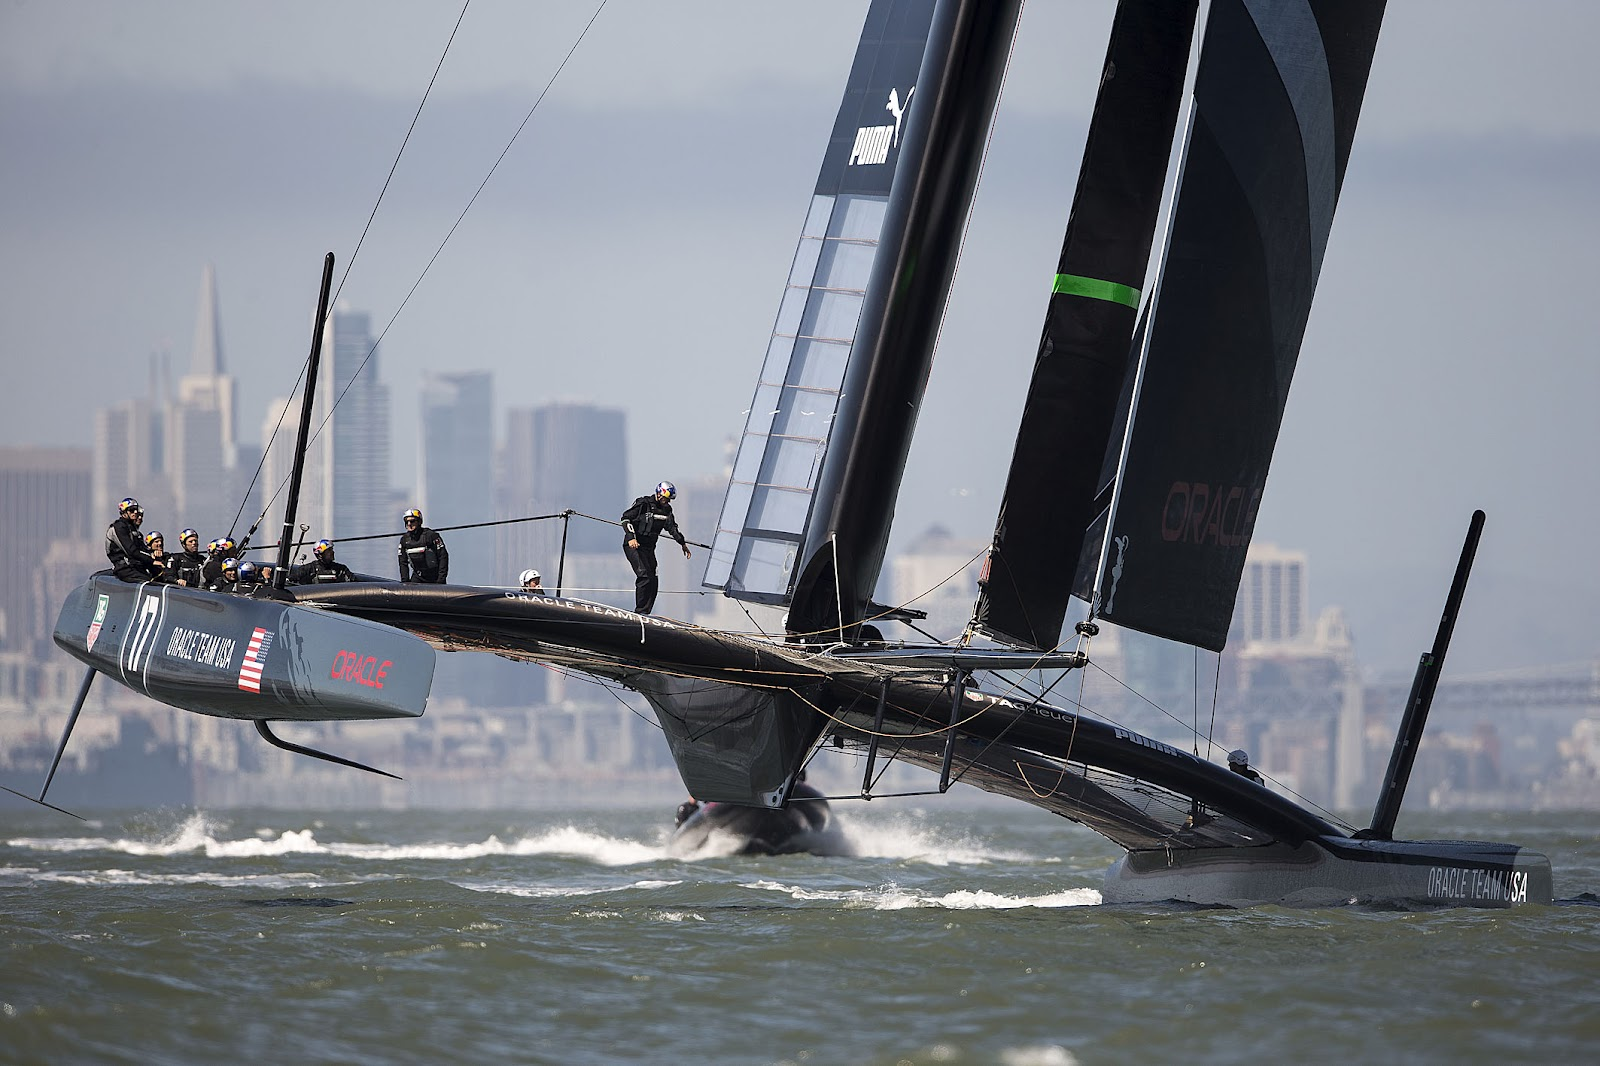 america cup race 17 and 18 dating